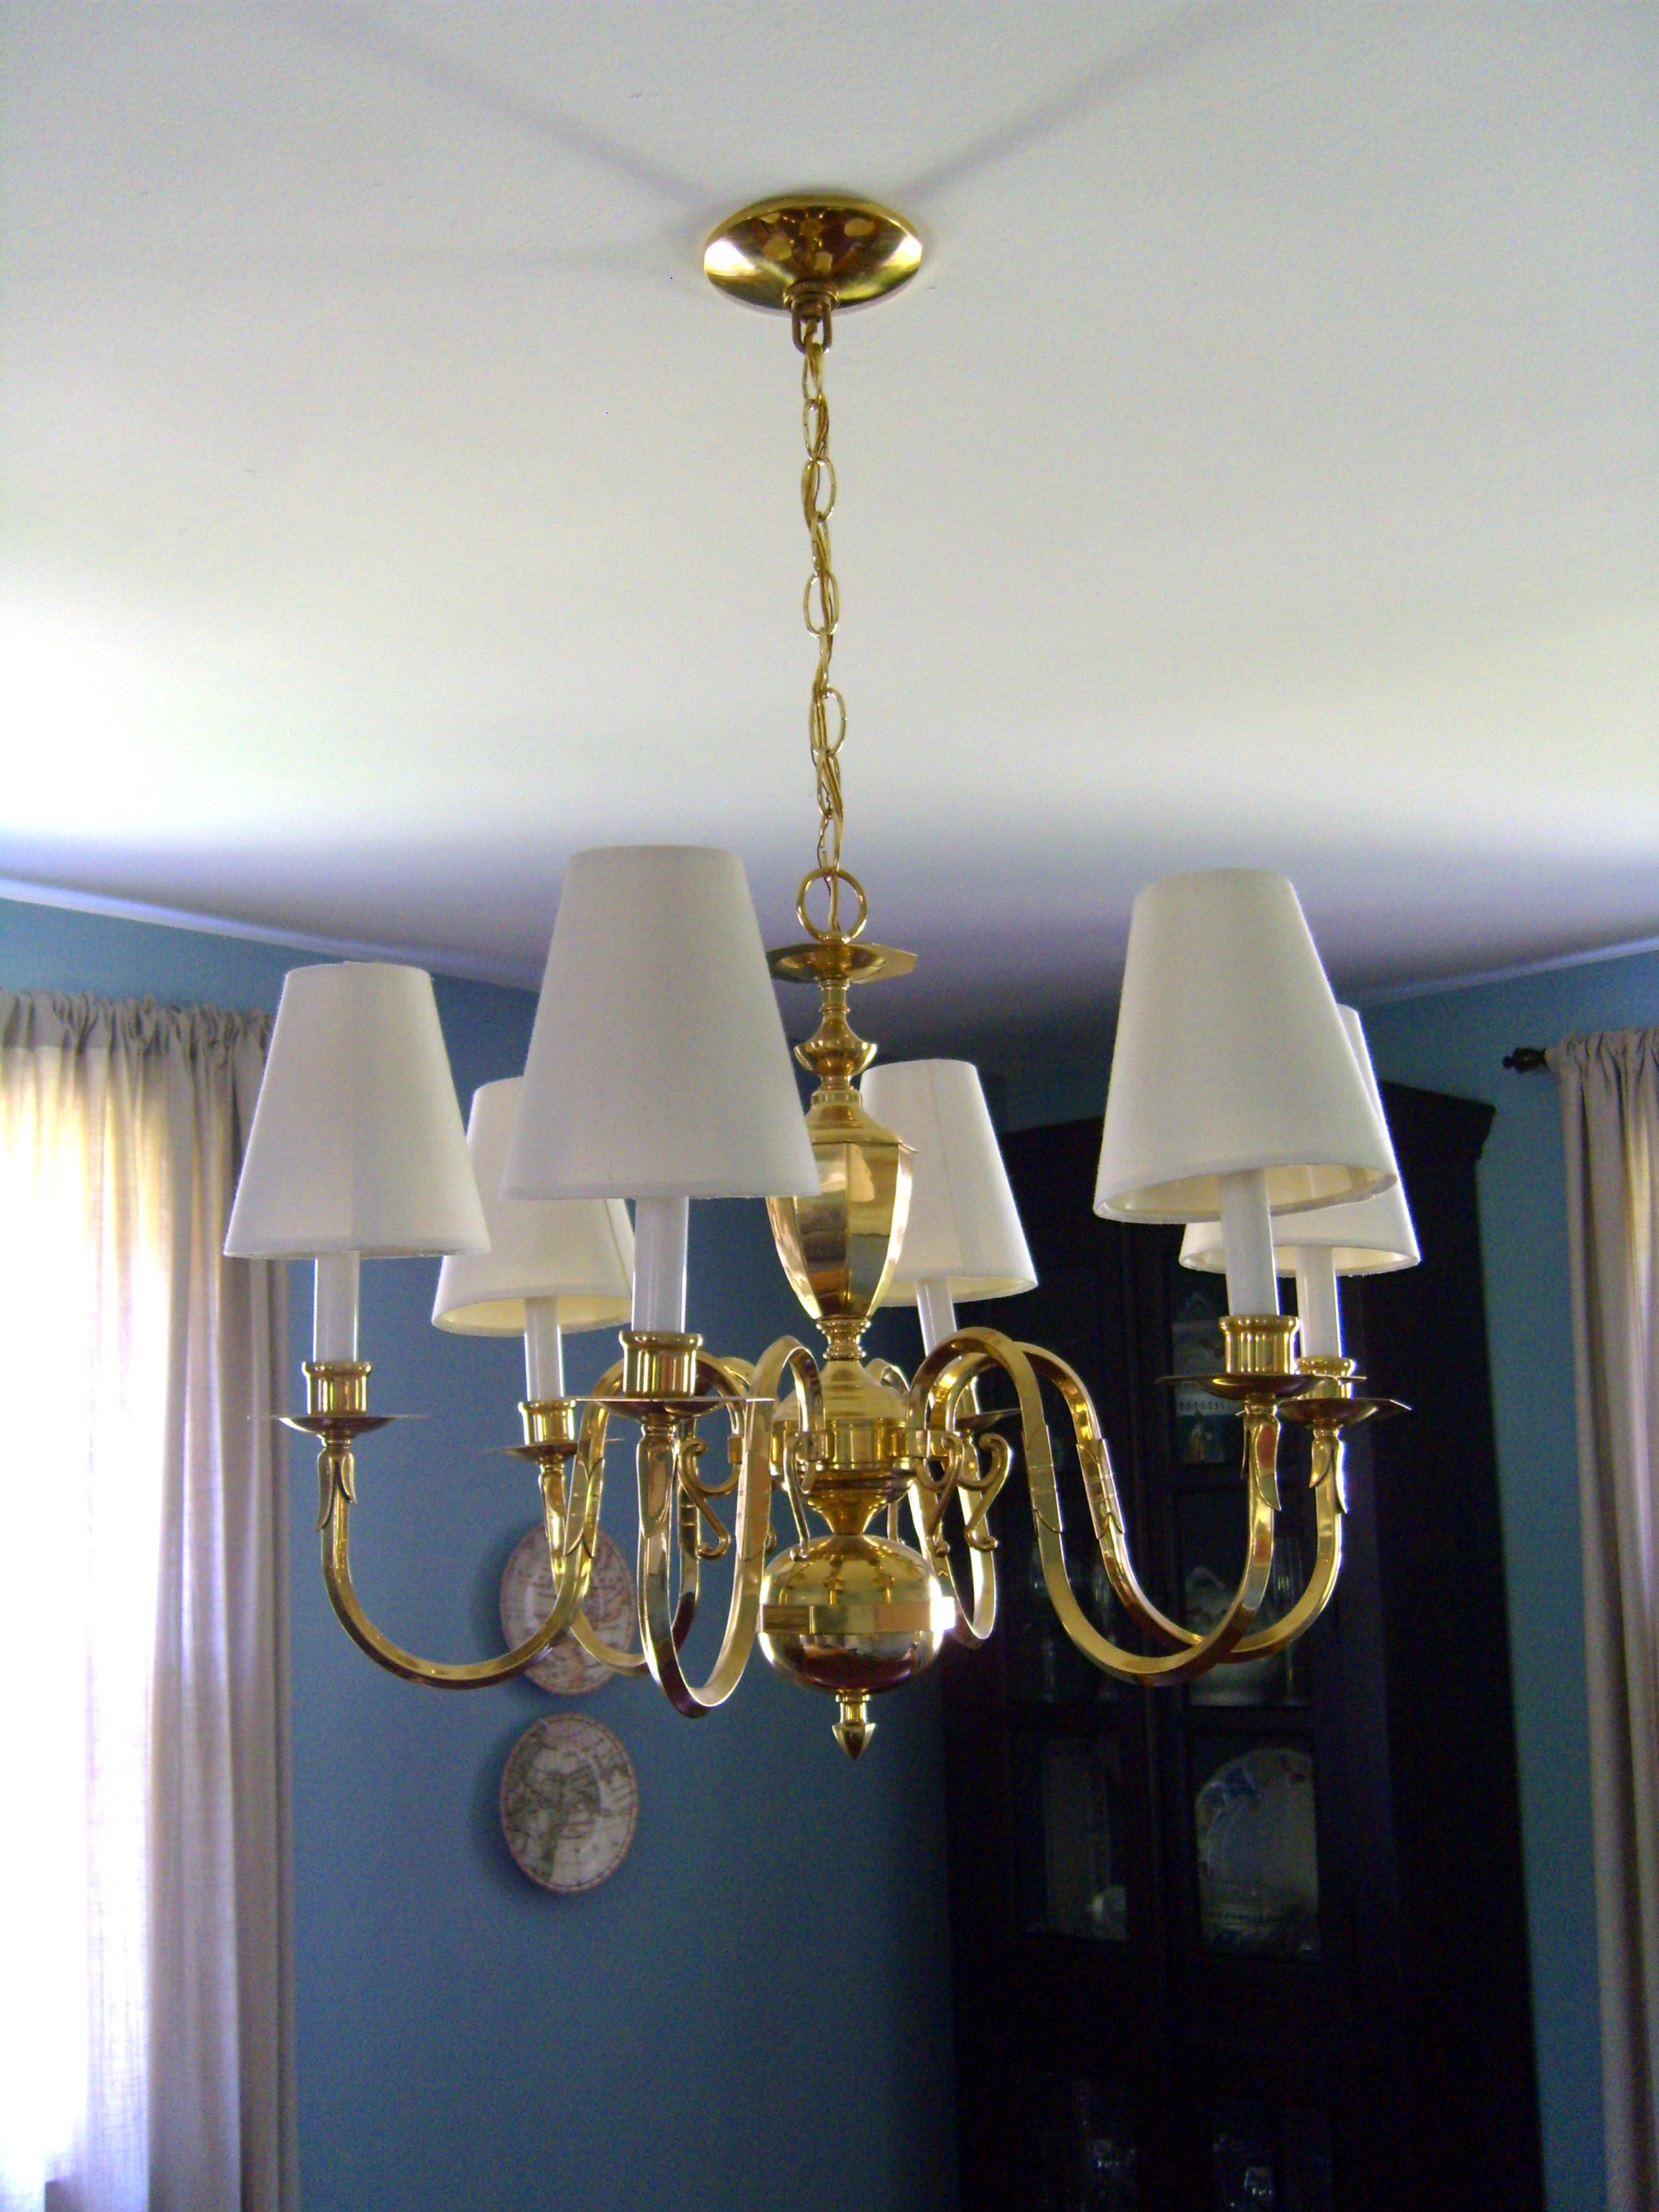 Furniture : Small Chandeliers Pink Chandelier White Lantern Pendant For Most Popular Black Chandeliers With Shades (View 17 of 20)